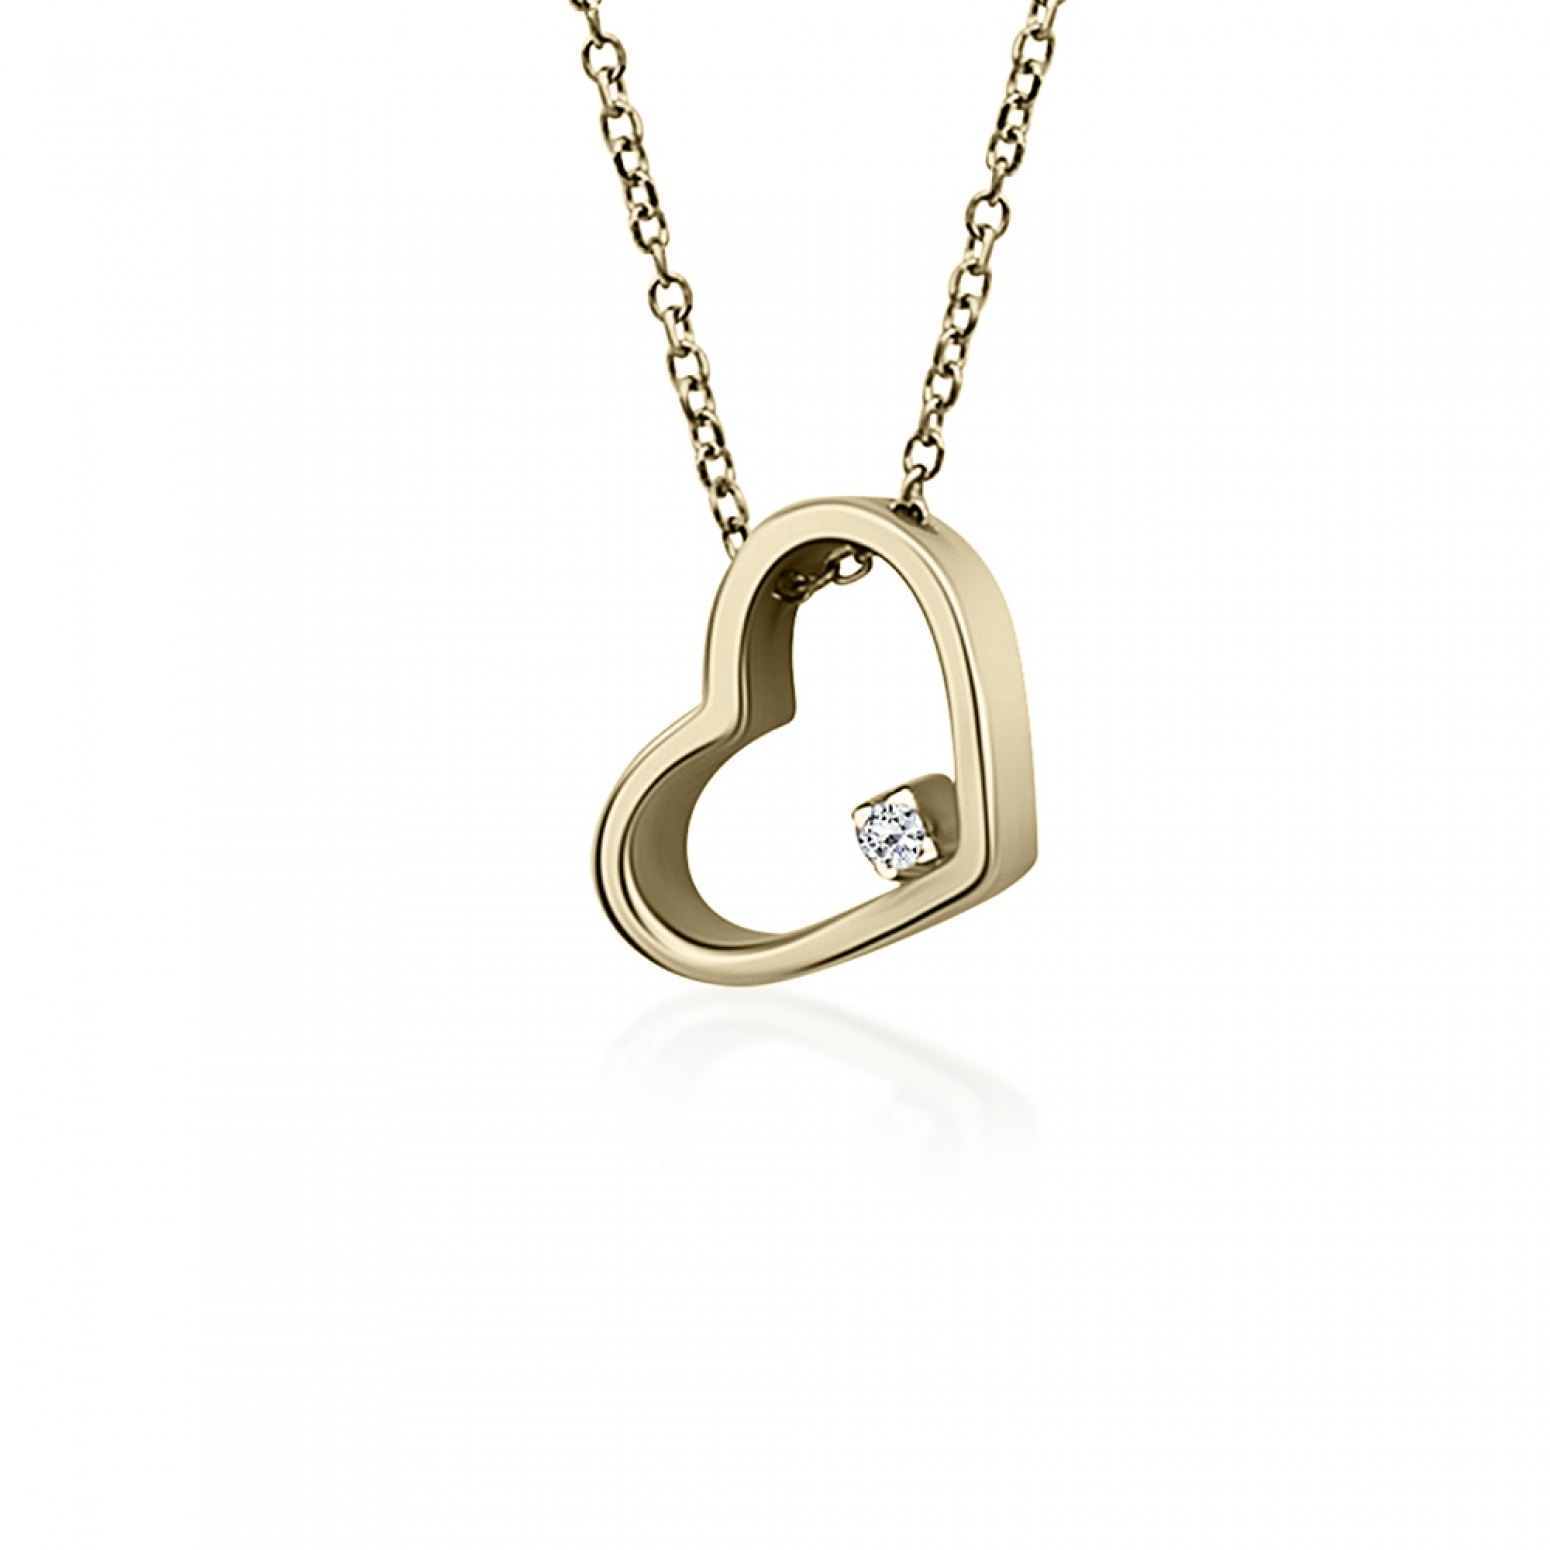 Heart necklace, Κ9 gold with zircon, ko5082 NECKLACES Κοσμηματα - chrilia.gr